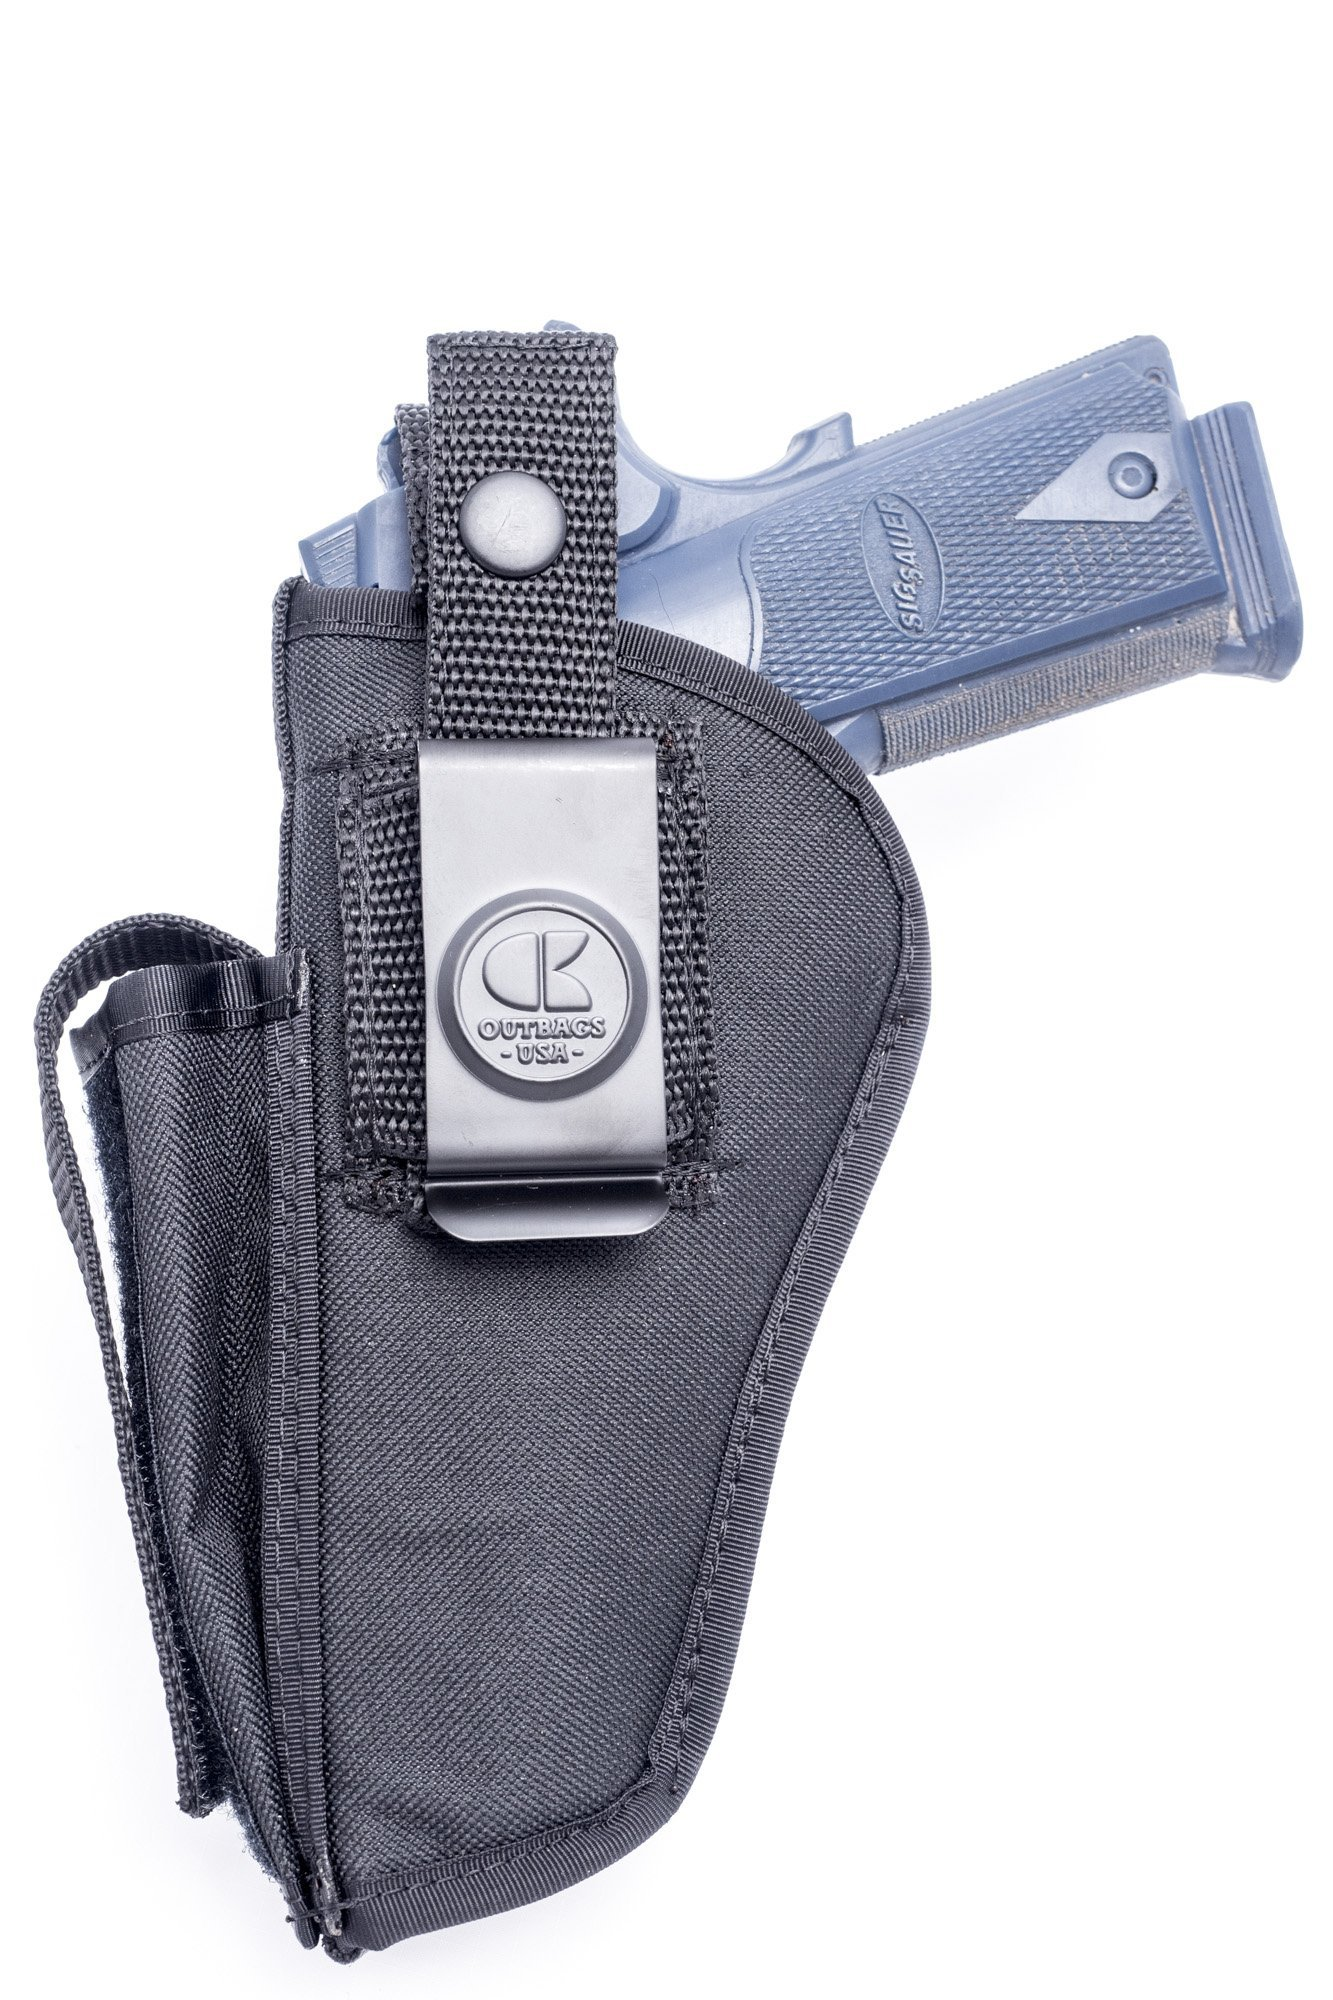 OUTBAGS USA OB-04SC Nylon OWB Outside Pants Carry Holster w/ Mag Pouch